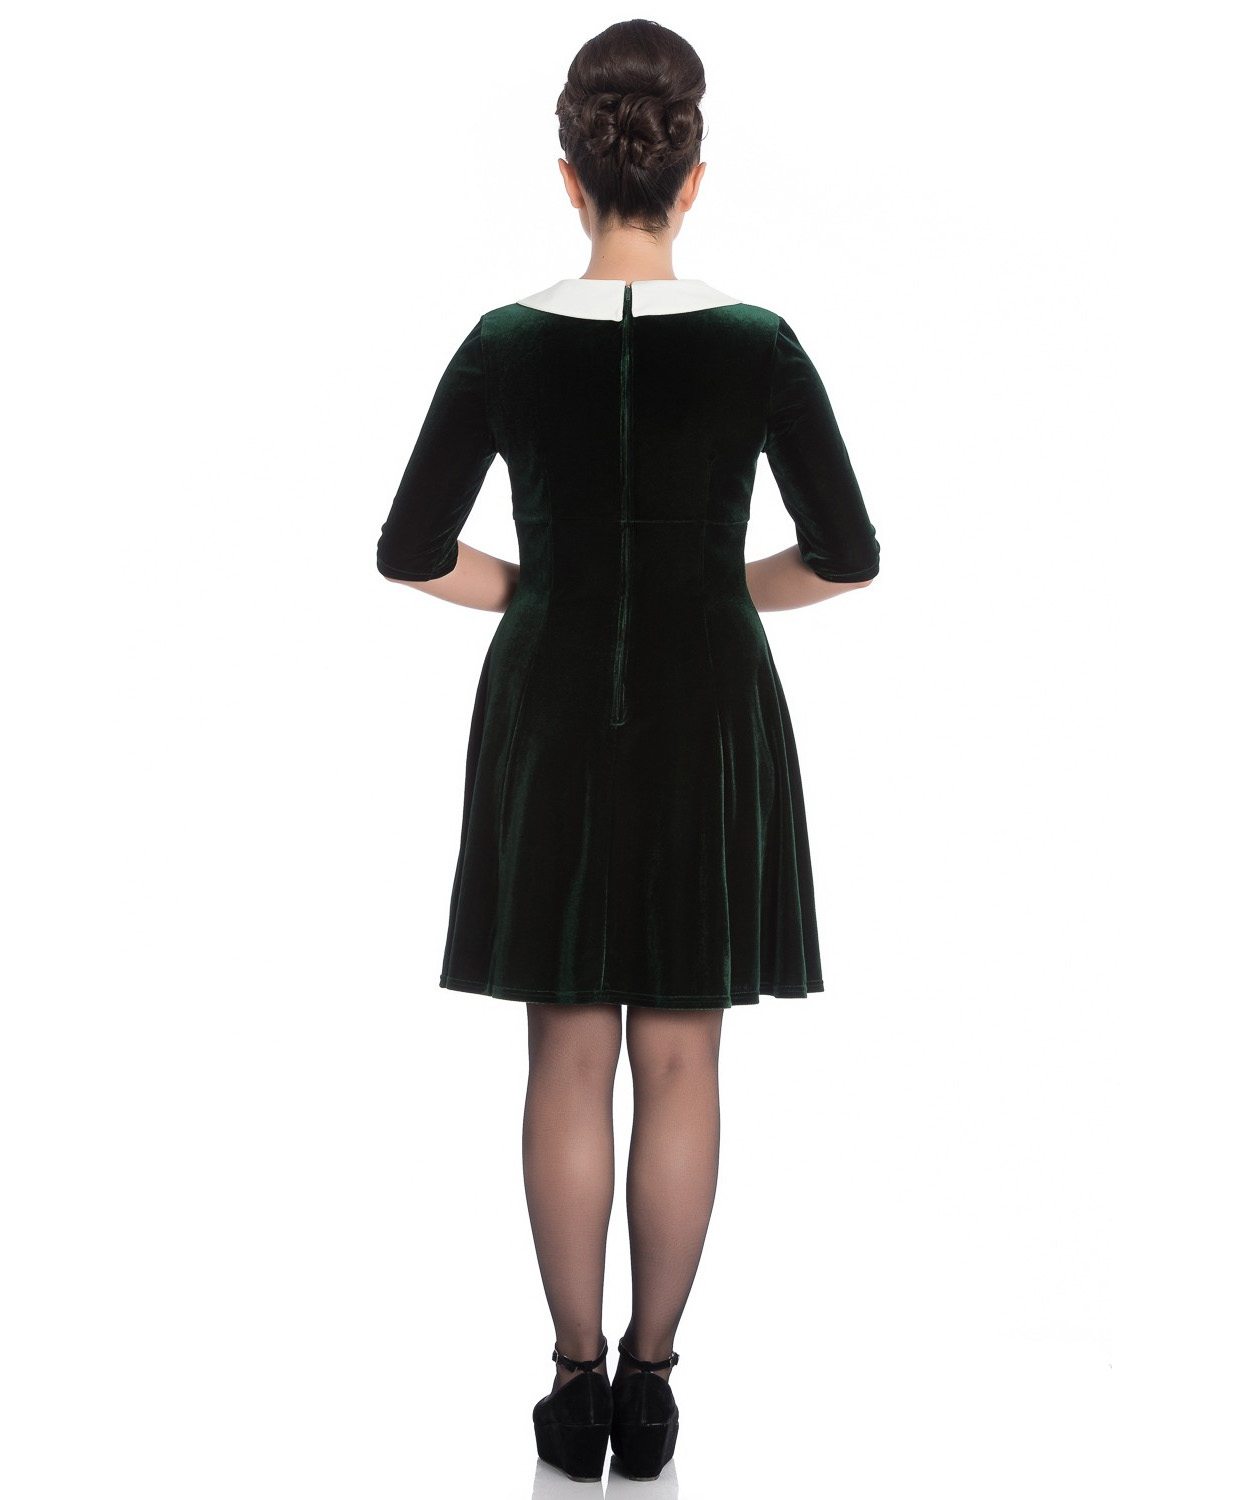 Hell-Bunny-Mini-Skater-Dress-Festive-Christmas-MERRILY-Green-Velvet-All-Sizes thumbnail 5